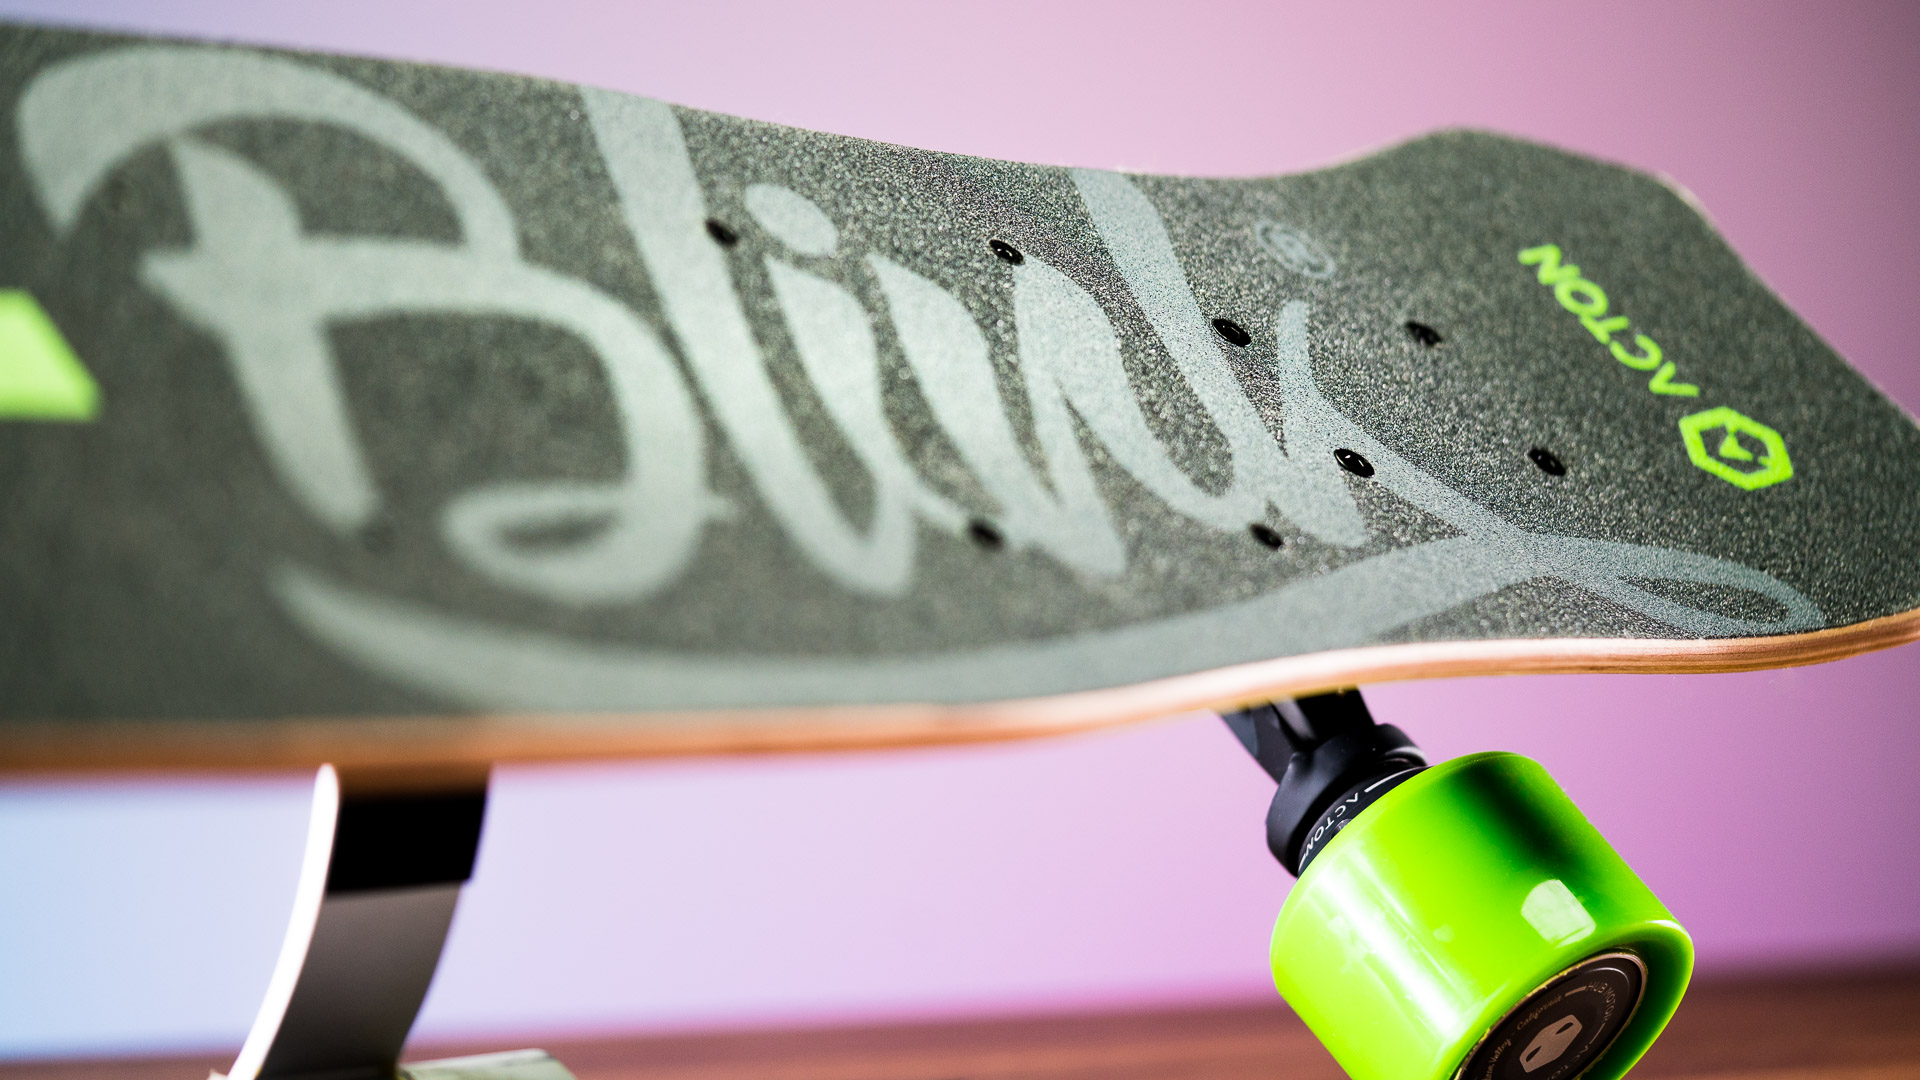 ACTON's BLINK Lite is the lightest and one of the cheapest electric skateboards on the market. Affordability and mobility were the goals to making the ultimate short-distance commuter e-board.